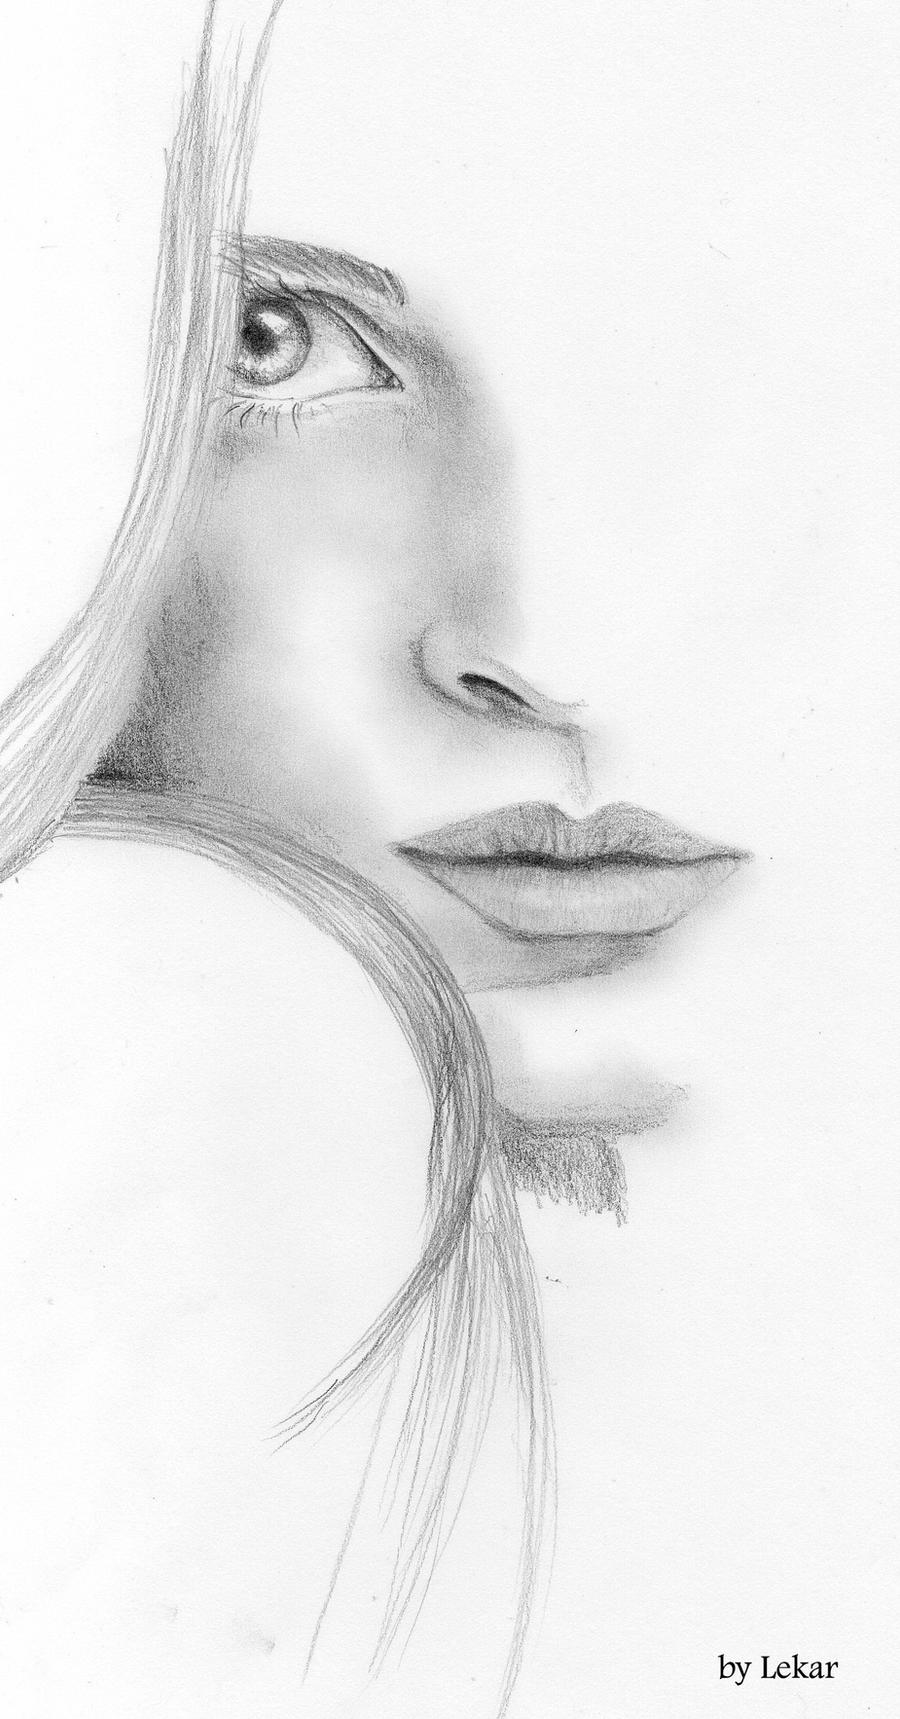 Woman Face Sketch By Lanfear Chess On DeviantArt